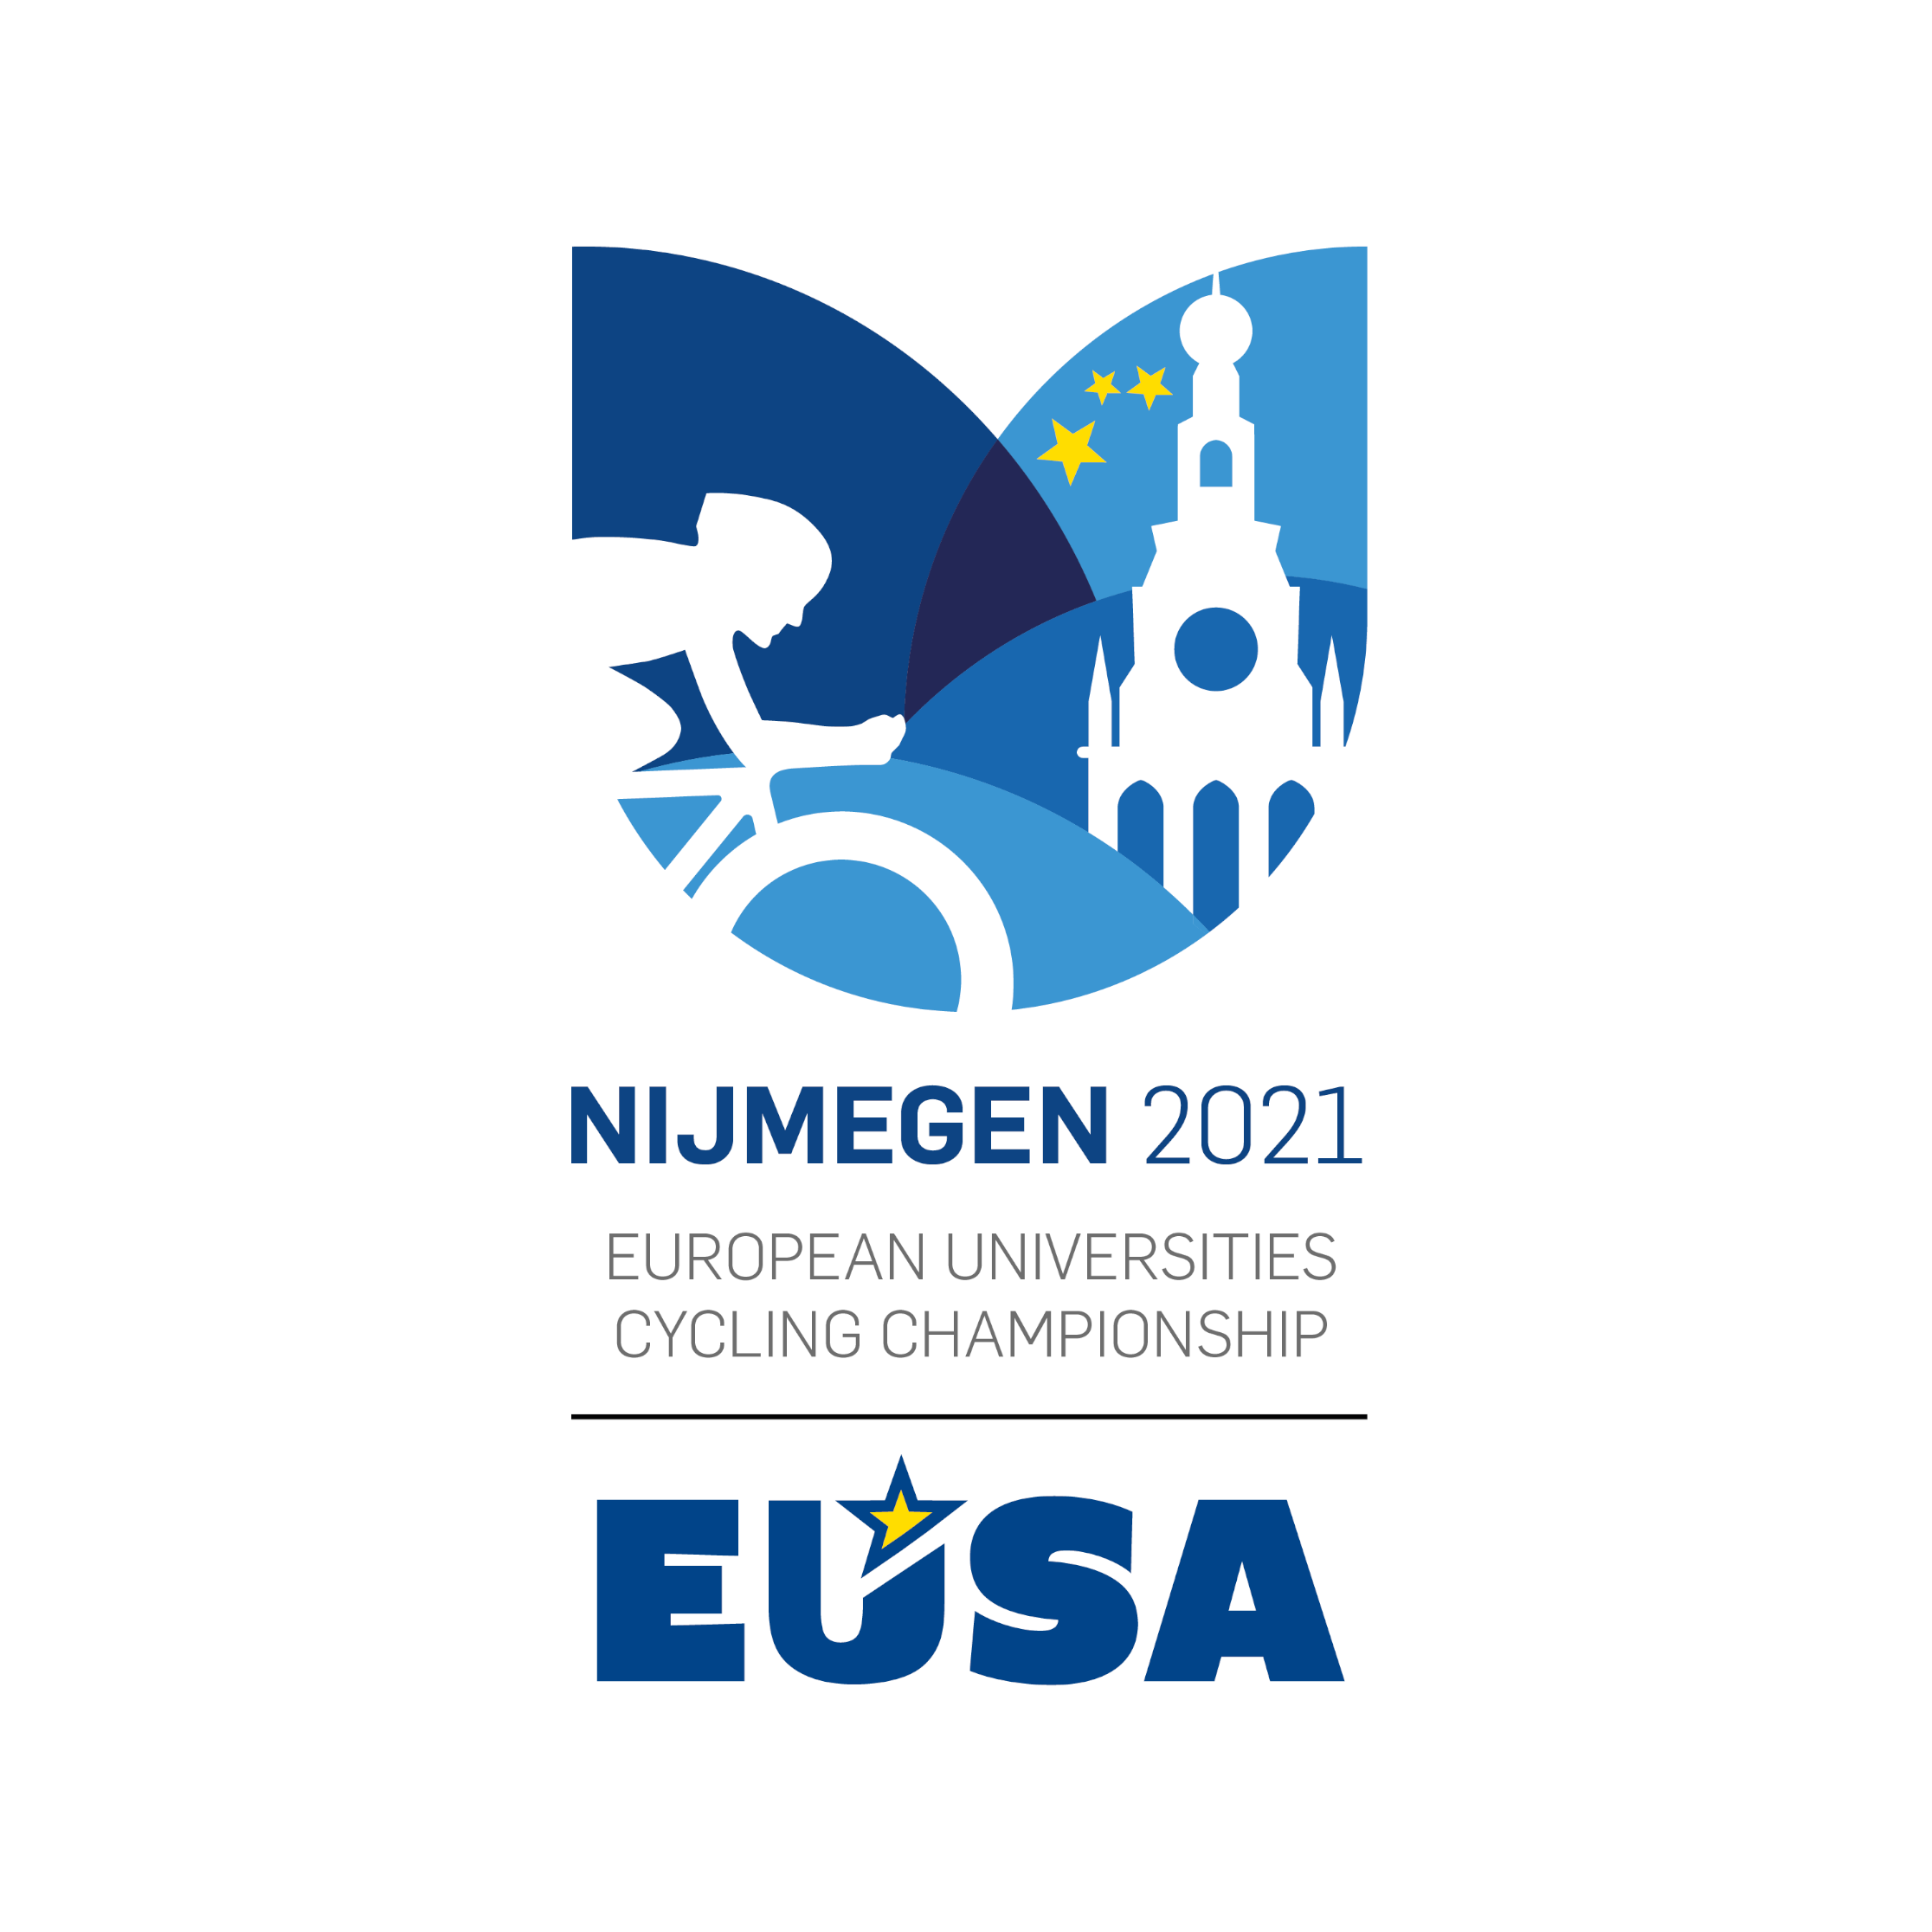 Nijmegen 2021 - European Universities Cycling Championship